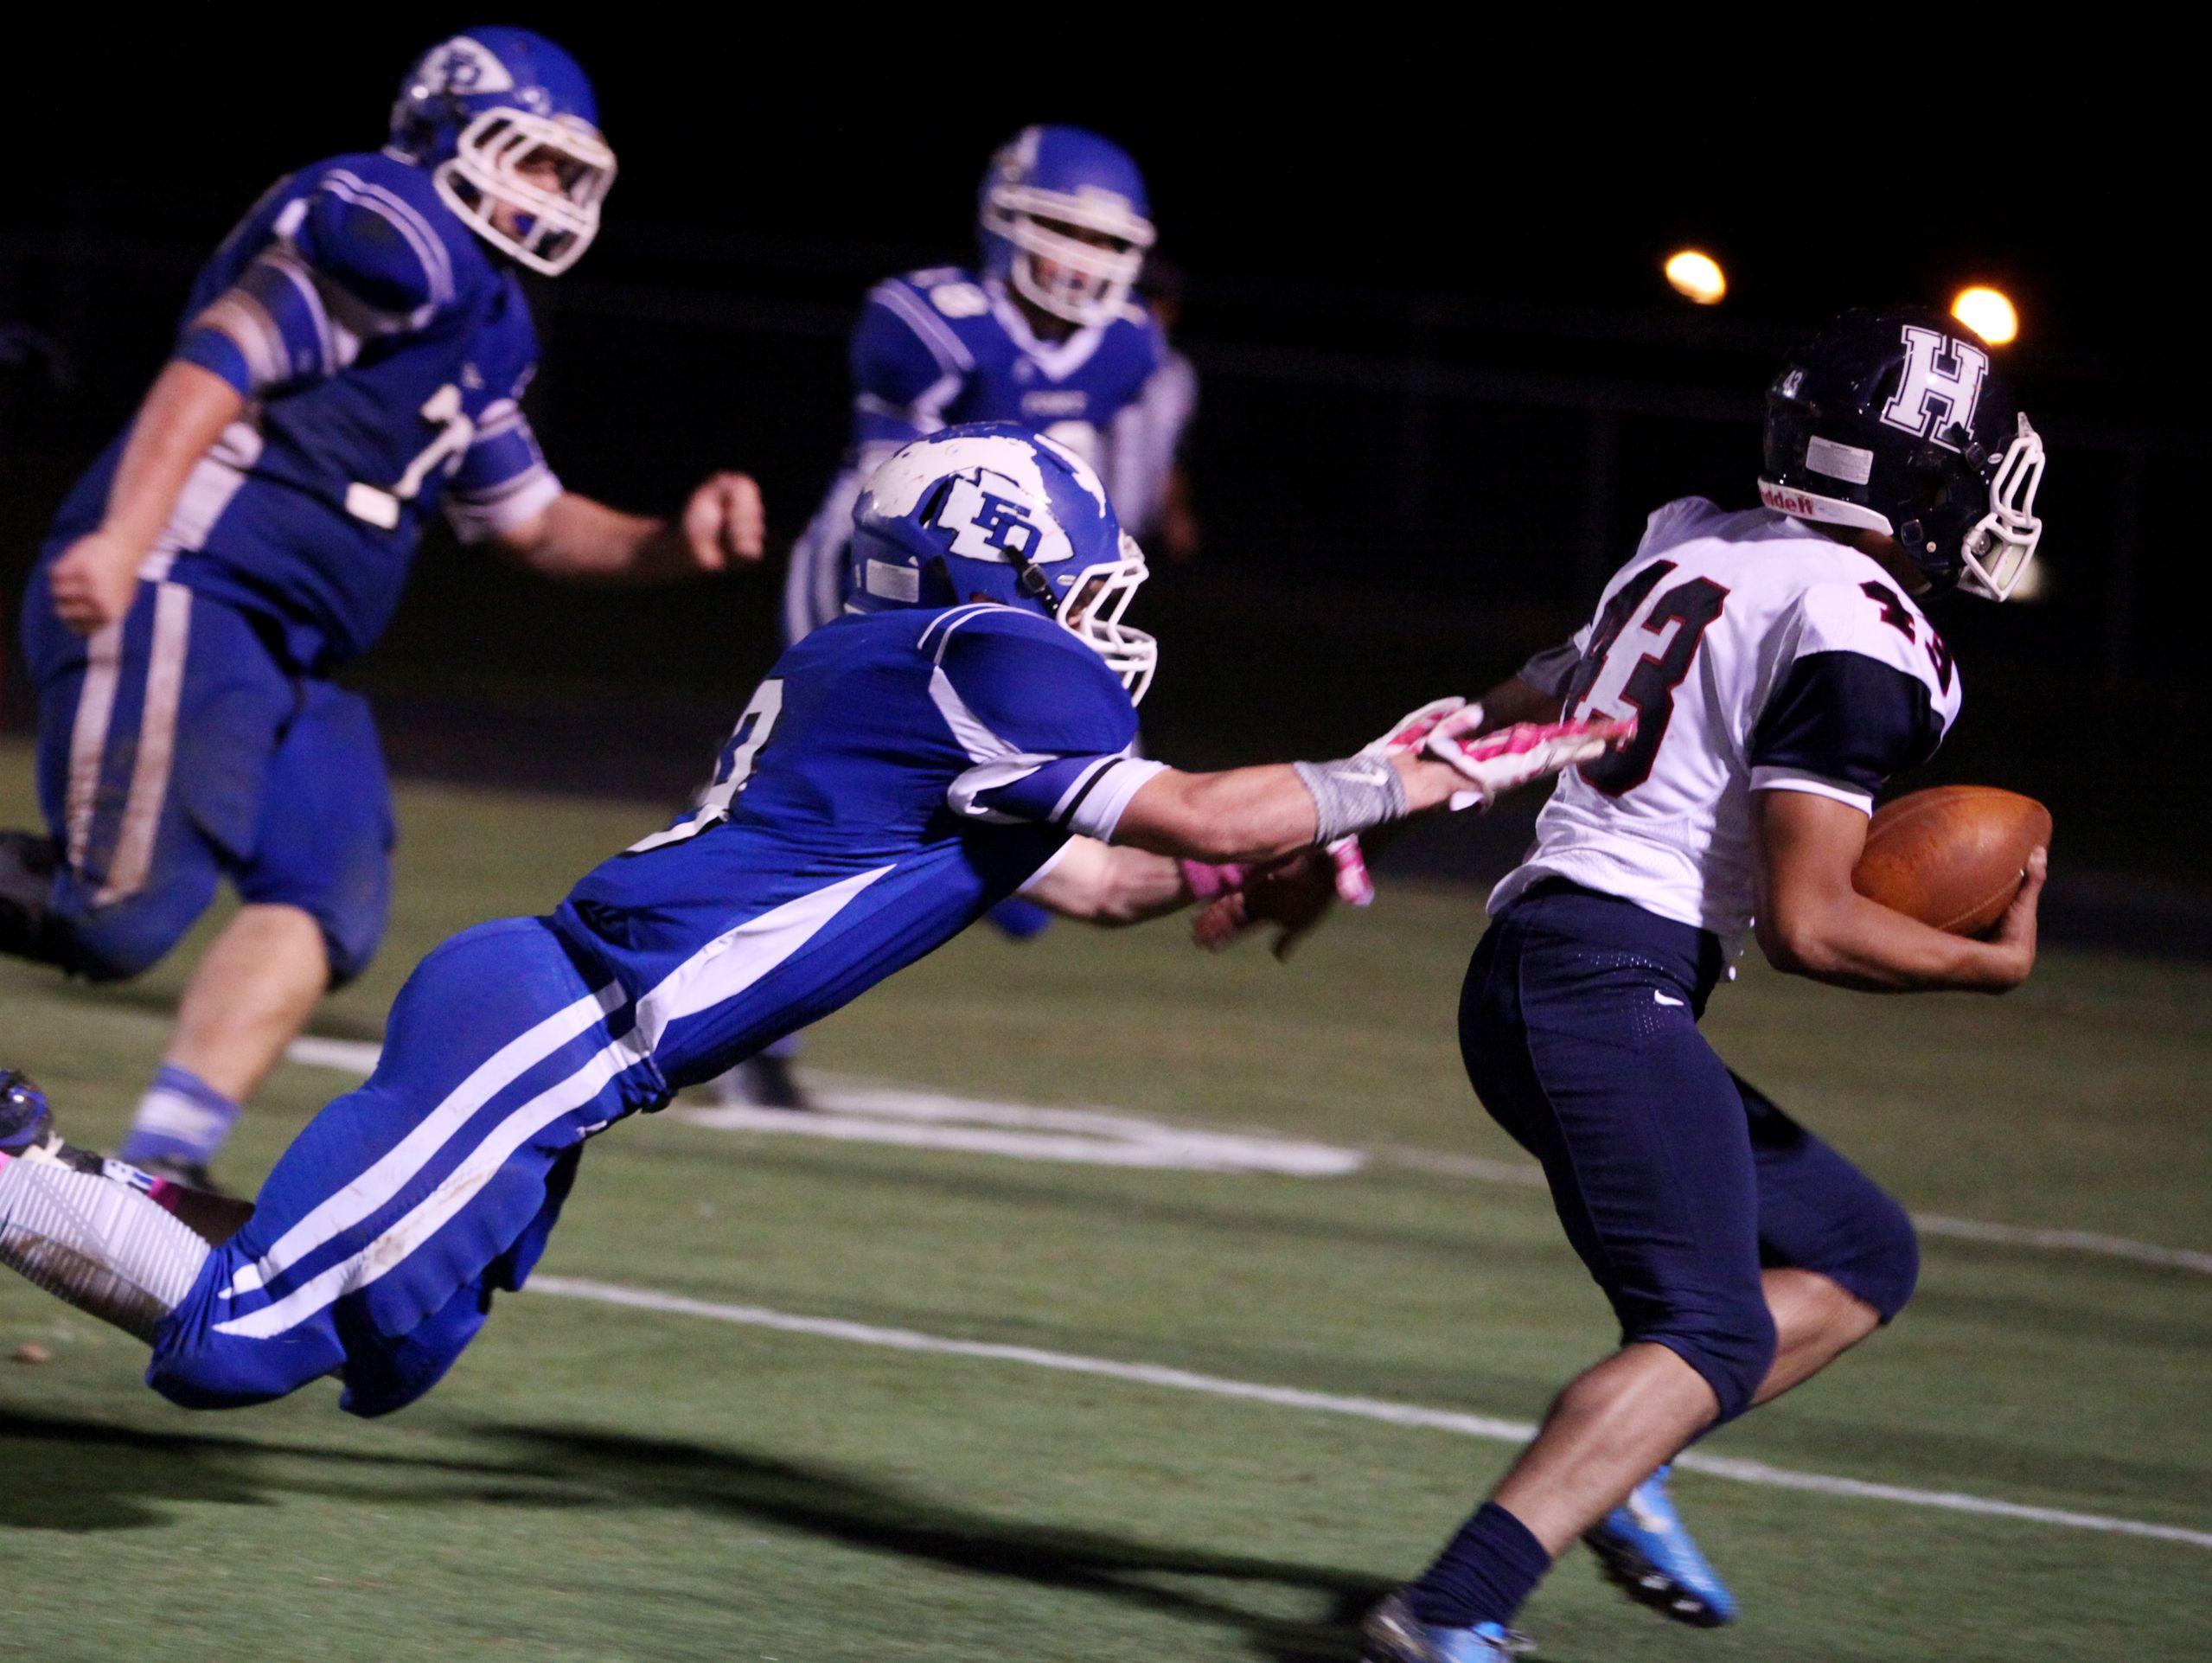 Fort Defiance's Matthew Wonderley dives to tackle Harrisonburg's Roberto Gonzalez-Cavazos as he tries for a two-point conversion during the second quarter of the game on Friday, Oct. 21, 2016 at Fort Defiance.